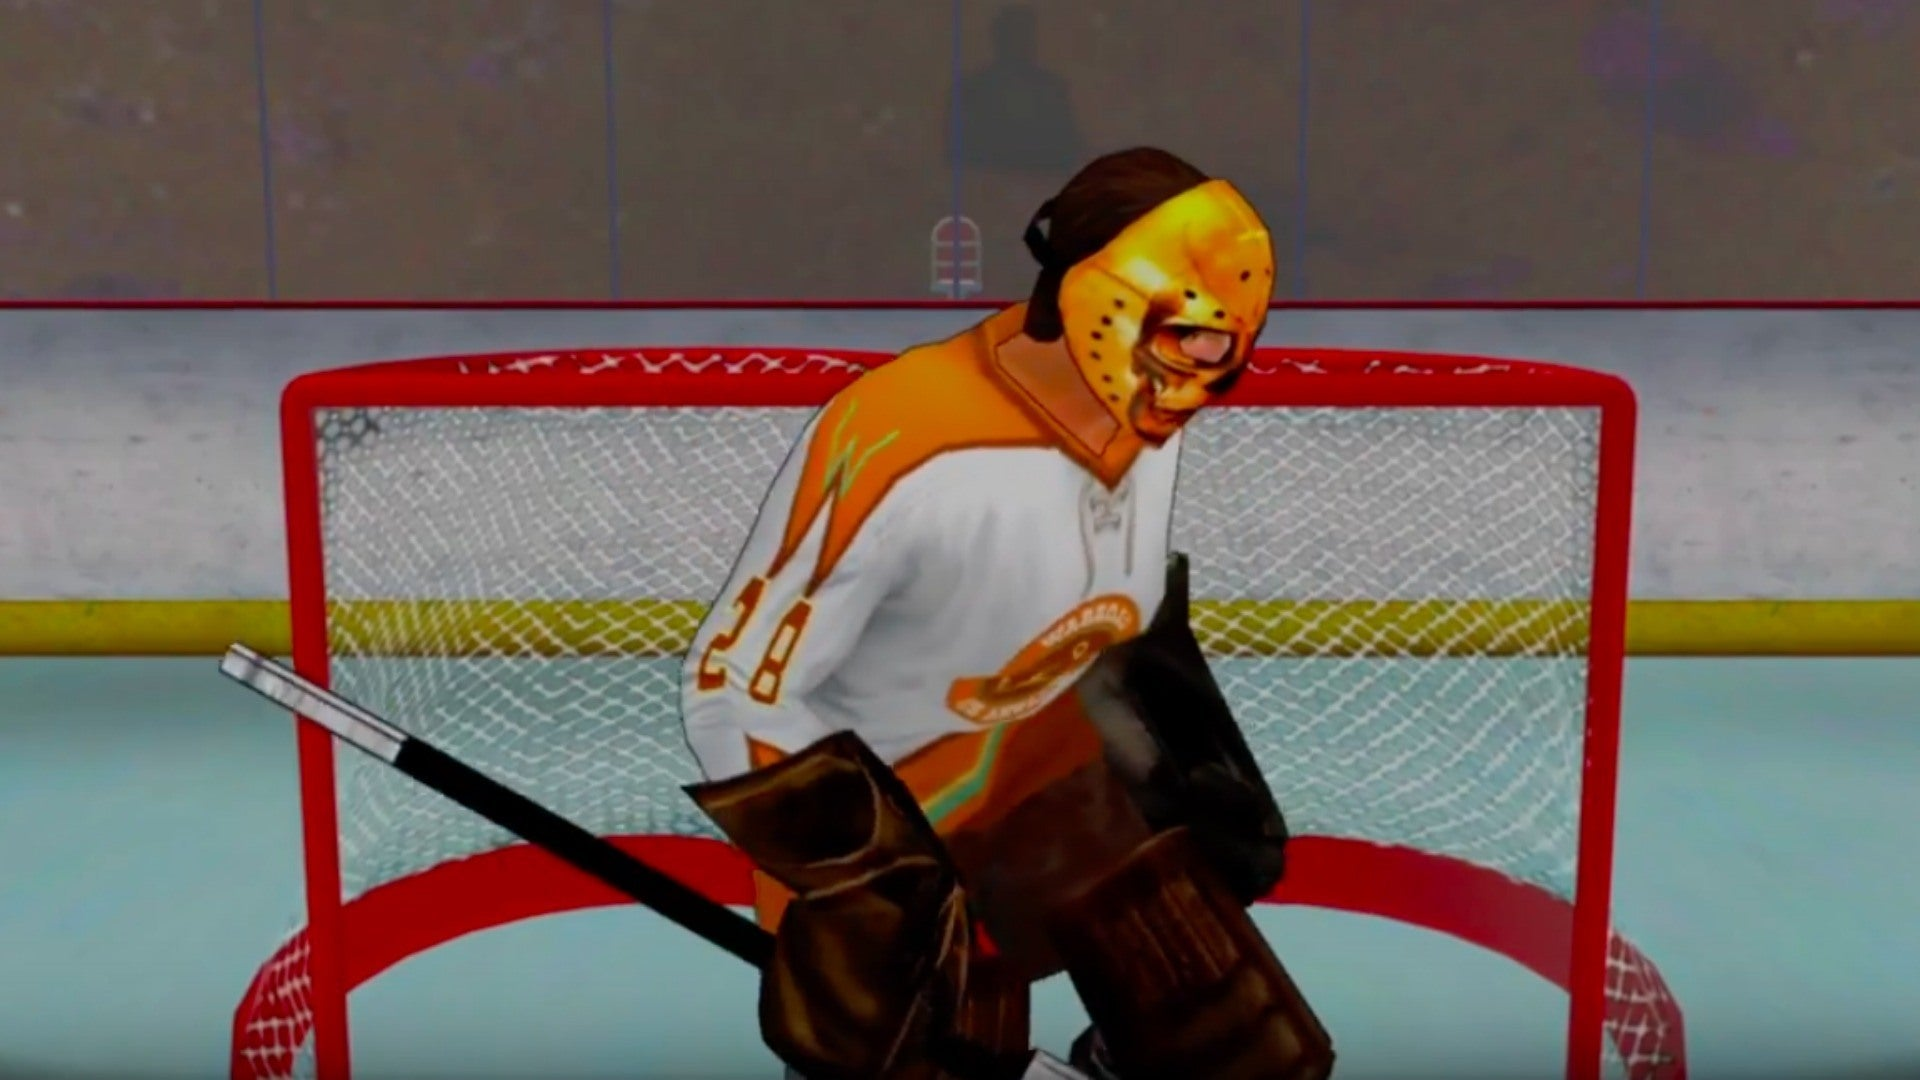 Old Time Hockey Videos Movies Amp Trailers Nintendo Switch IGN